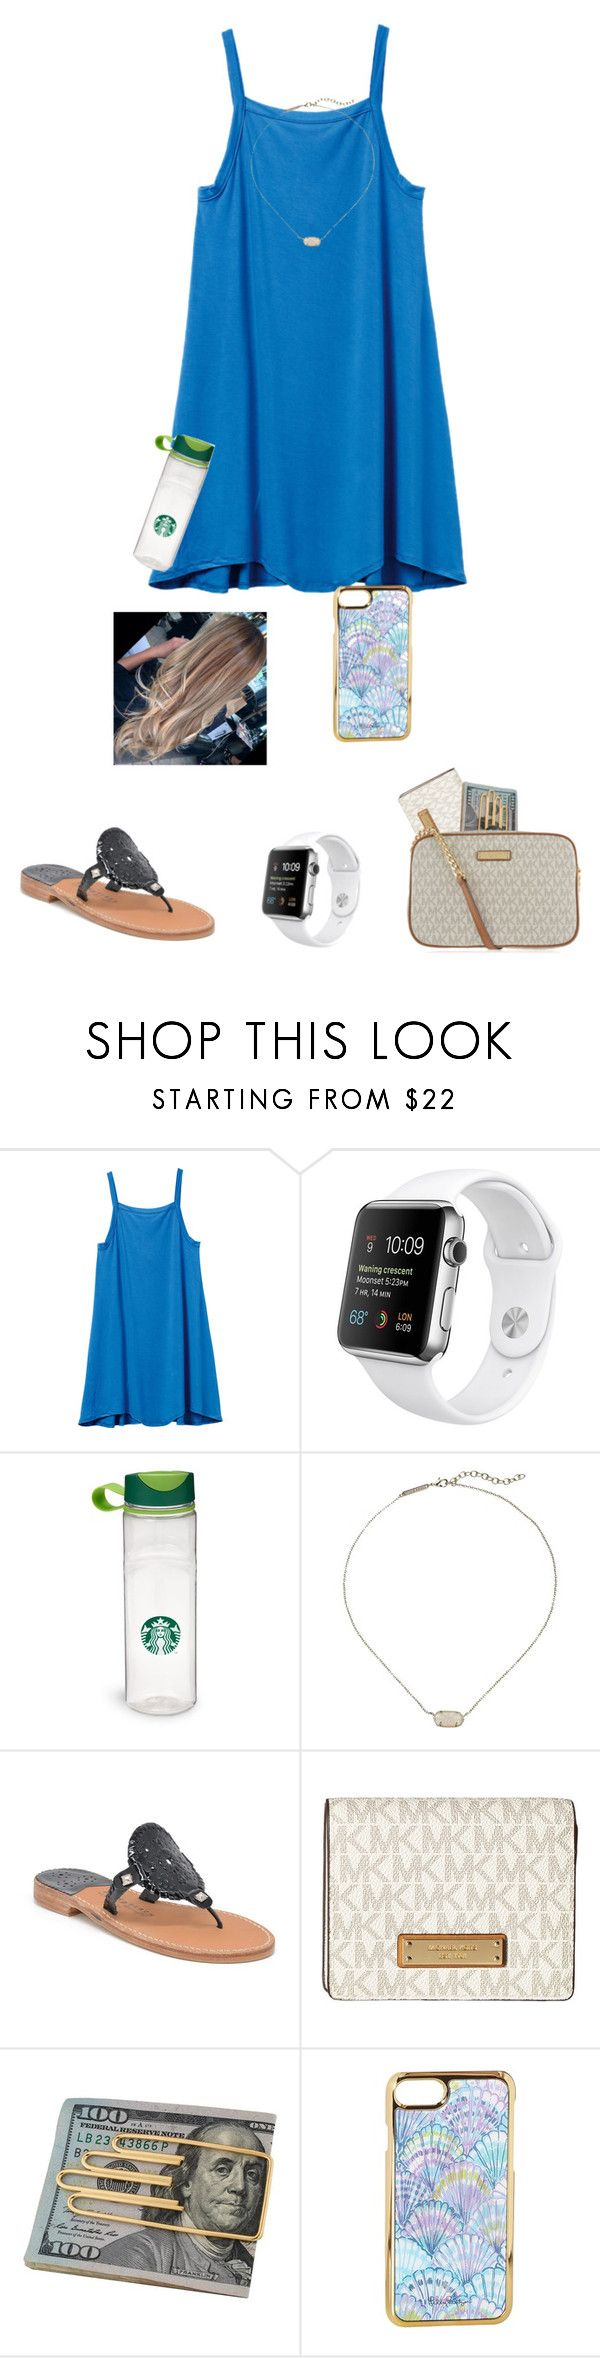 """""""Anyone from Kentucky??😂"""" by jessica-smith-xxv ❤ liked on Polyvore featuring RVCA, Kendra Scott, Palm Beach Sandals, MICHAEL Michael Kors, Cartier and Lilly Pulitzer"""